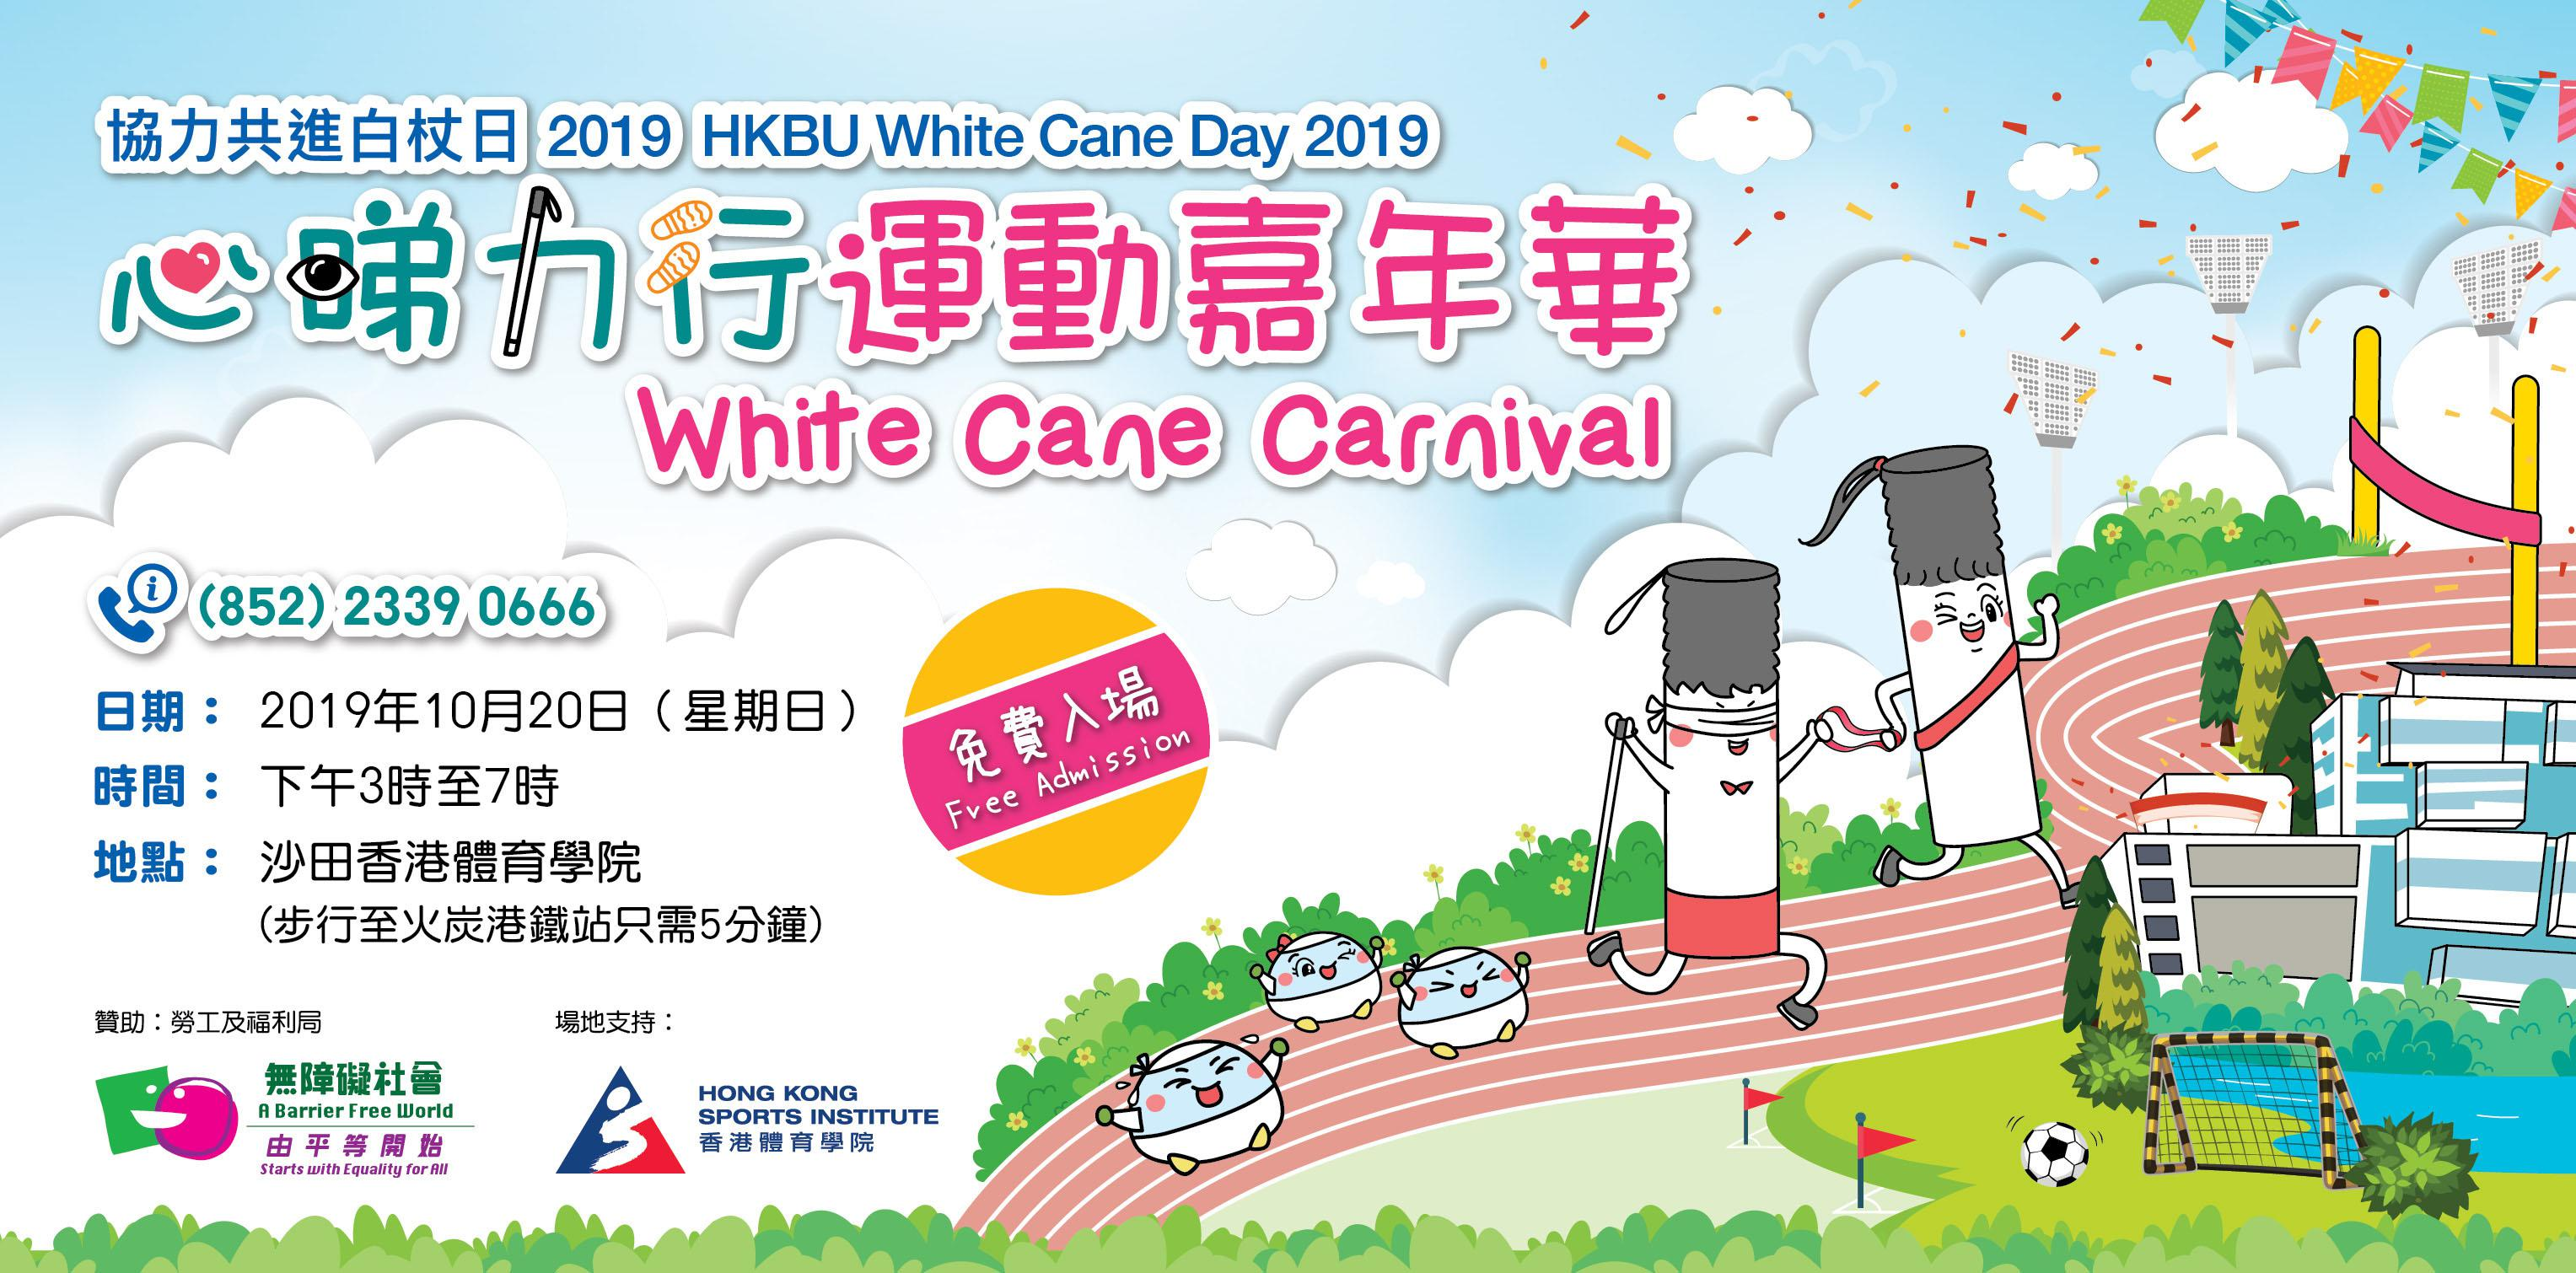 white cane day poster